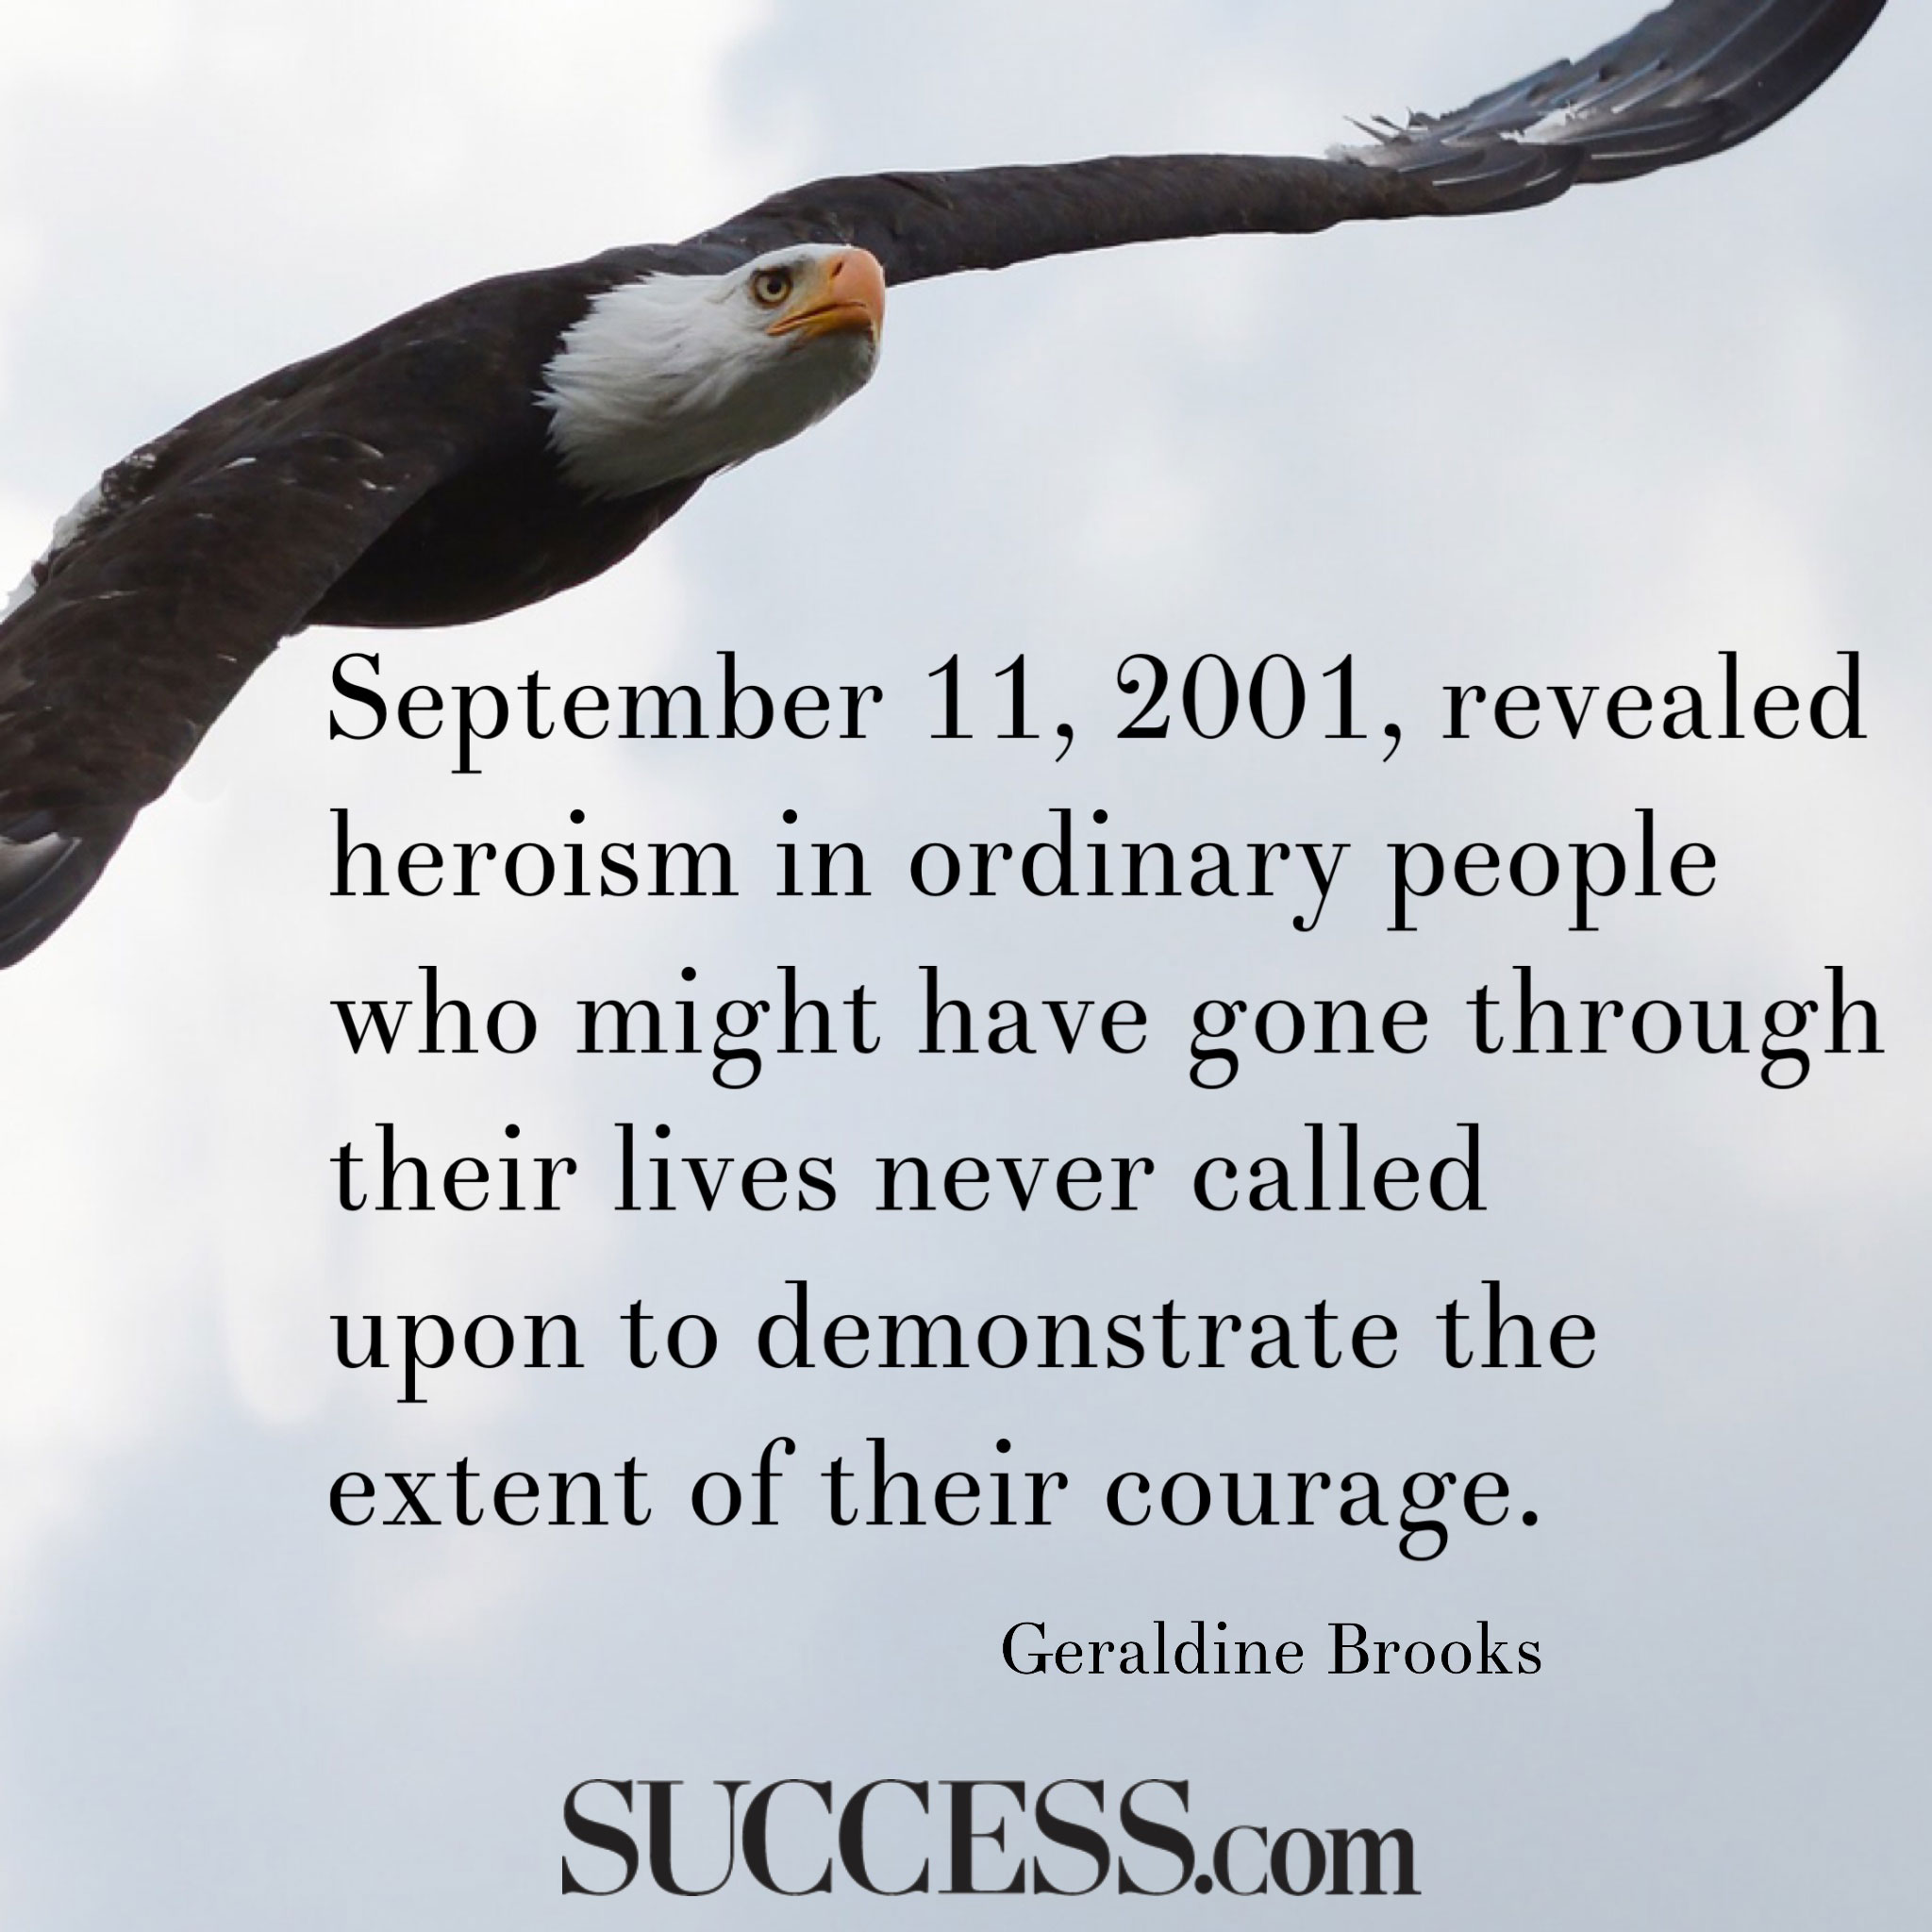 13 Thoughtful Quotes to Remember 9/11